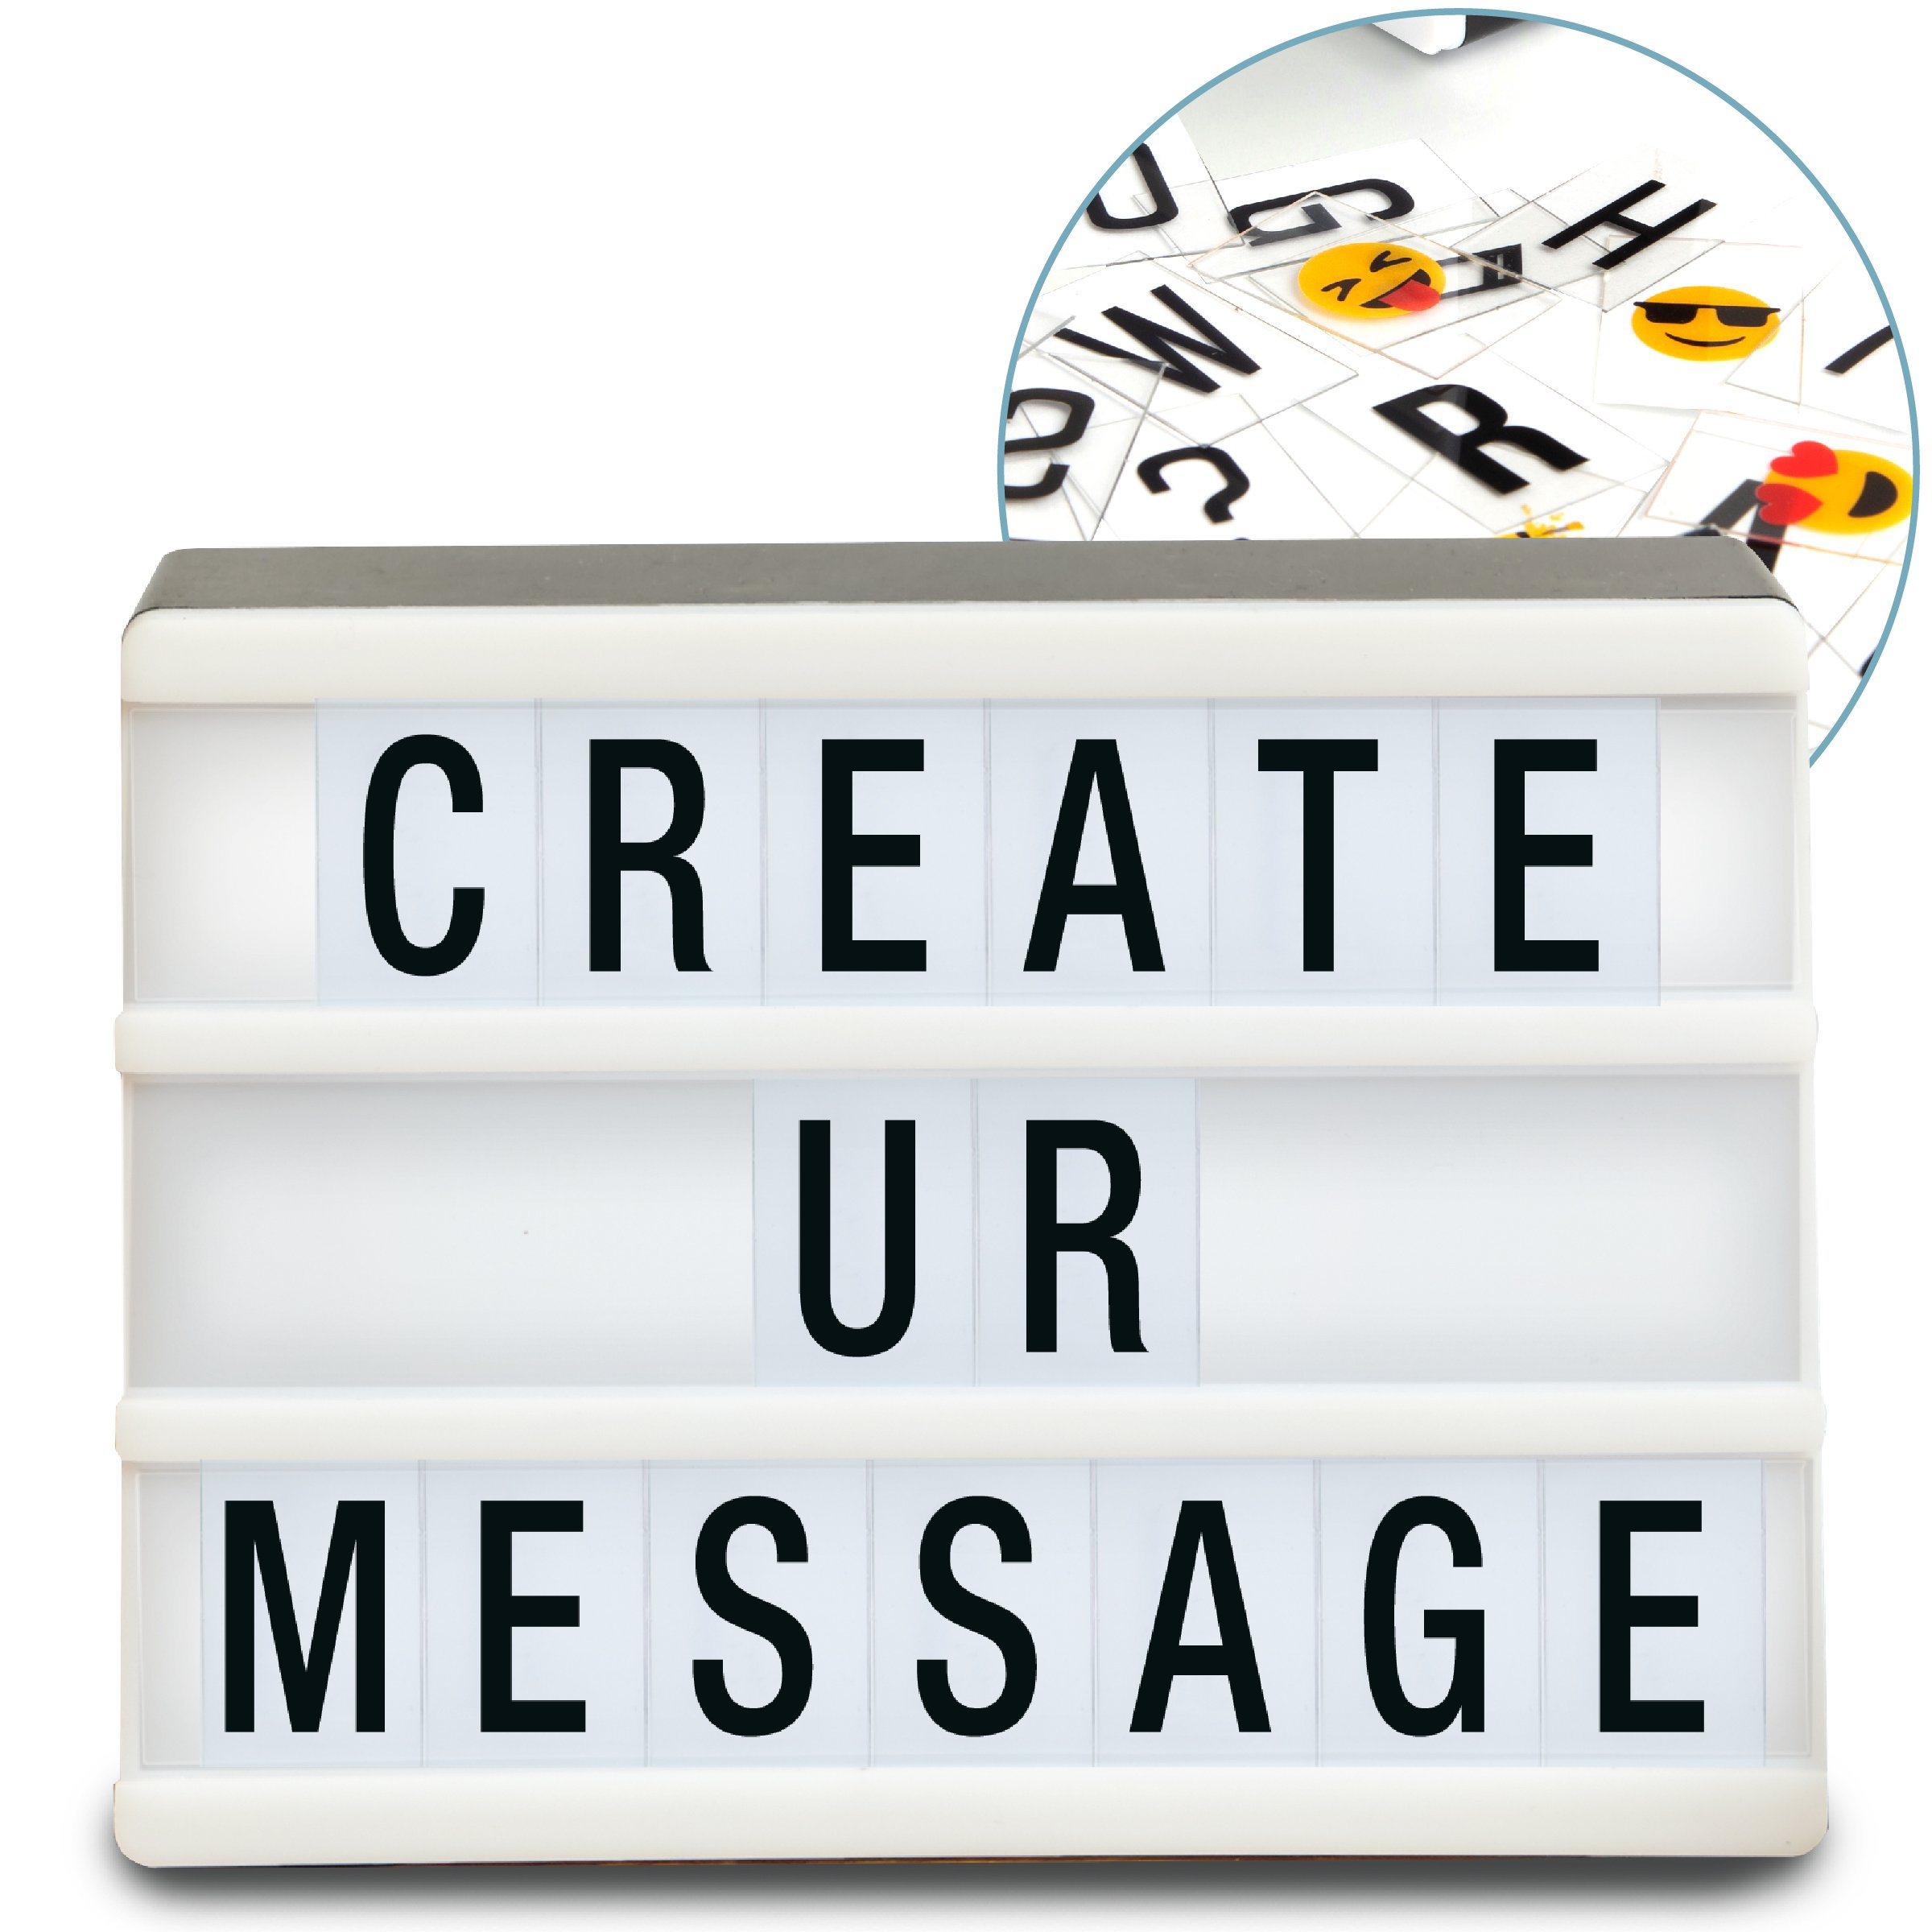 Sharper Image Mini Cinematic Light Up Box LED Message Letter Board Sign with 90 Letters and Emoji, Movie Marquee Lightbox, Aesthetic Bedroom & Room Decor, Theater Cinema Letterbox Lights Display by Sharper Image